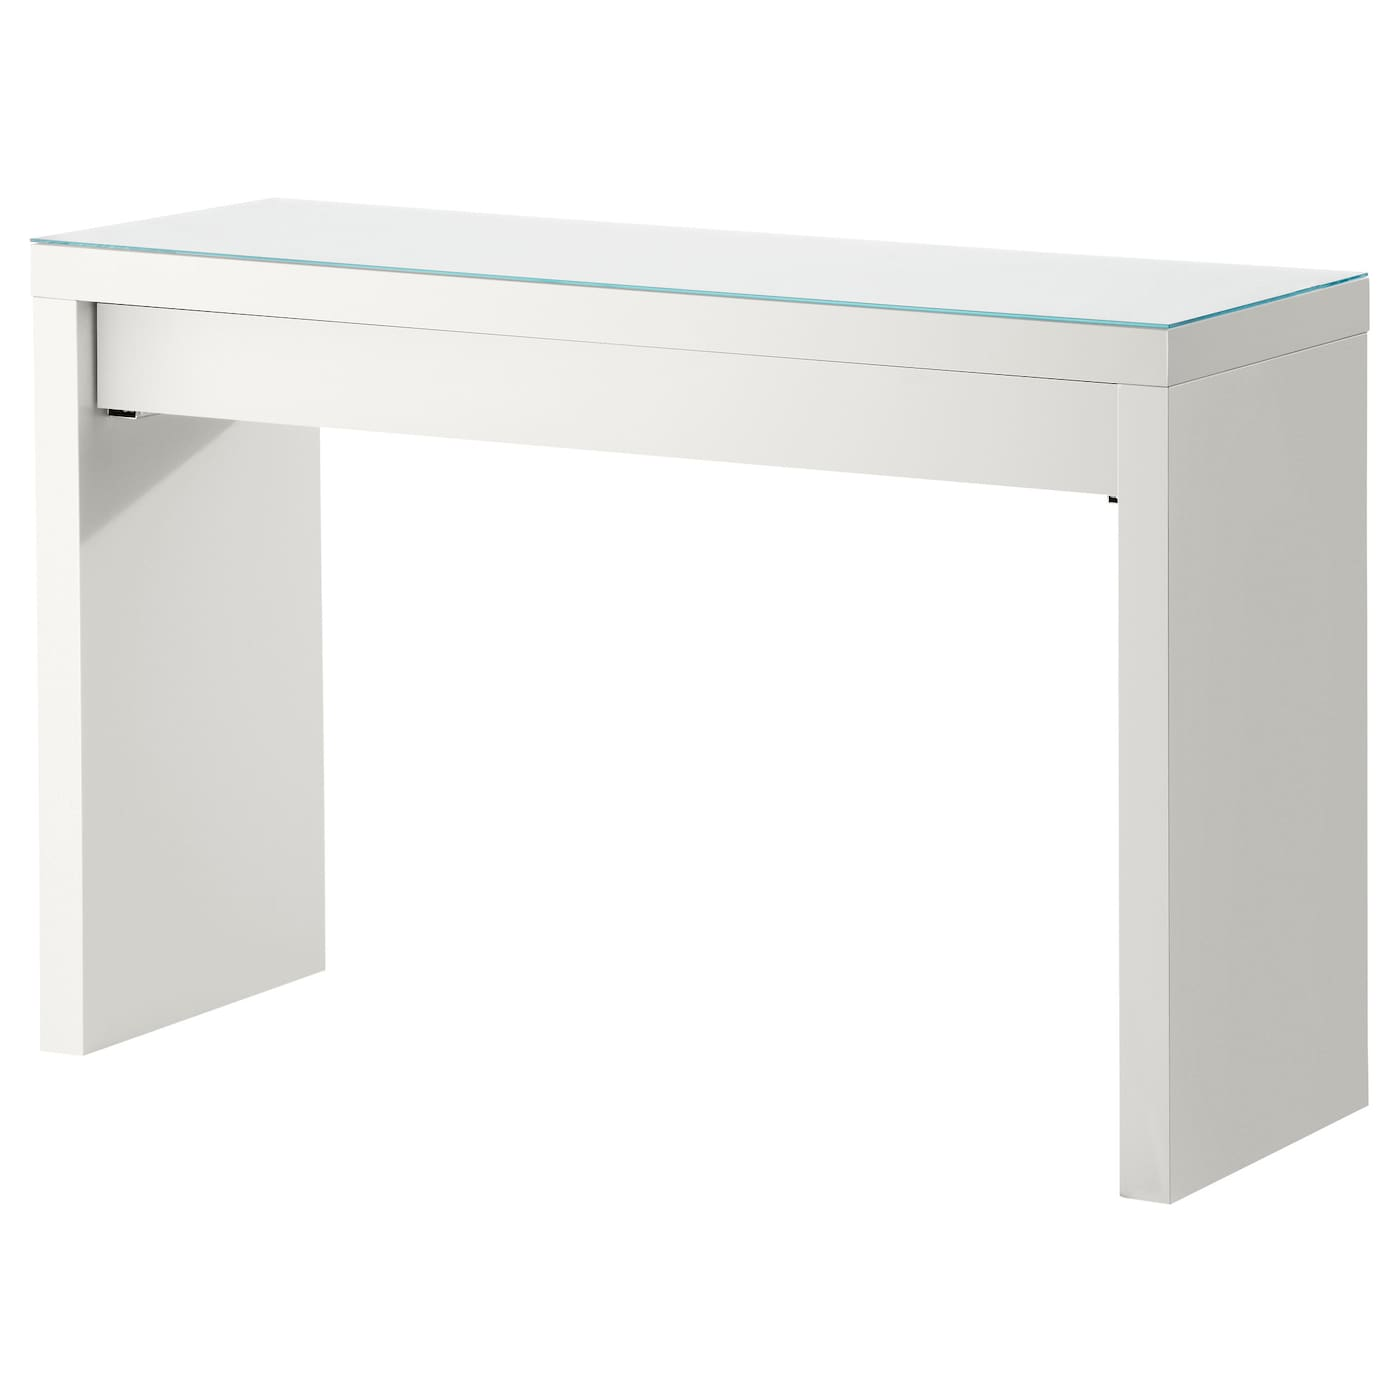 Malm dressing table white 120x41 cm ikea for Wide dressing table